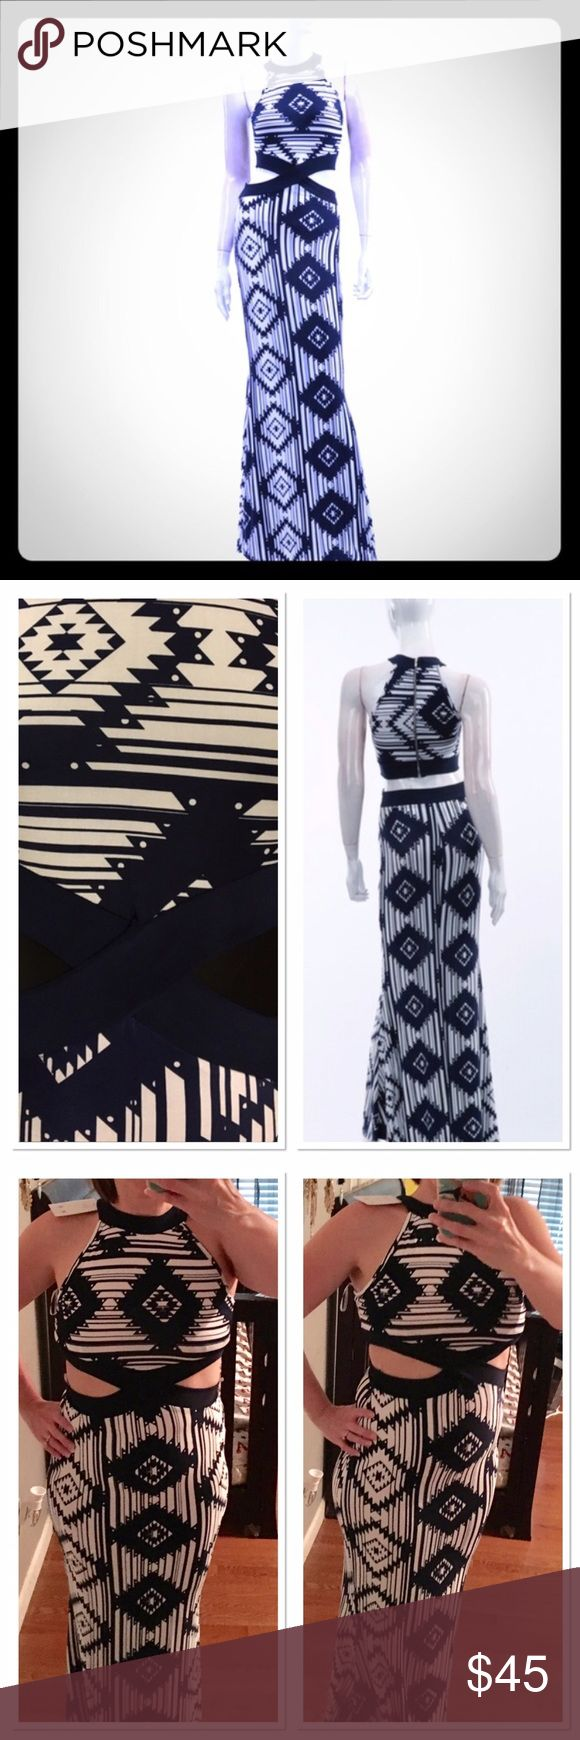 Aztec Maxi Dress Aztec print, dark Navy and white cutout maxi new with tags. A cute cutout shoes just the right amount of skin and has a small open lower back with a zip up detail in the back. 95% Polyester 5% Spandex this dress is so cute I wish it fit me better! Size L fits more like a medium. Dresses Maxi